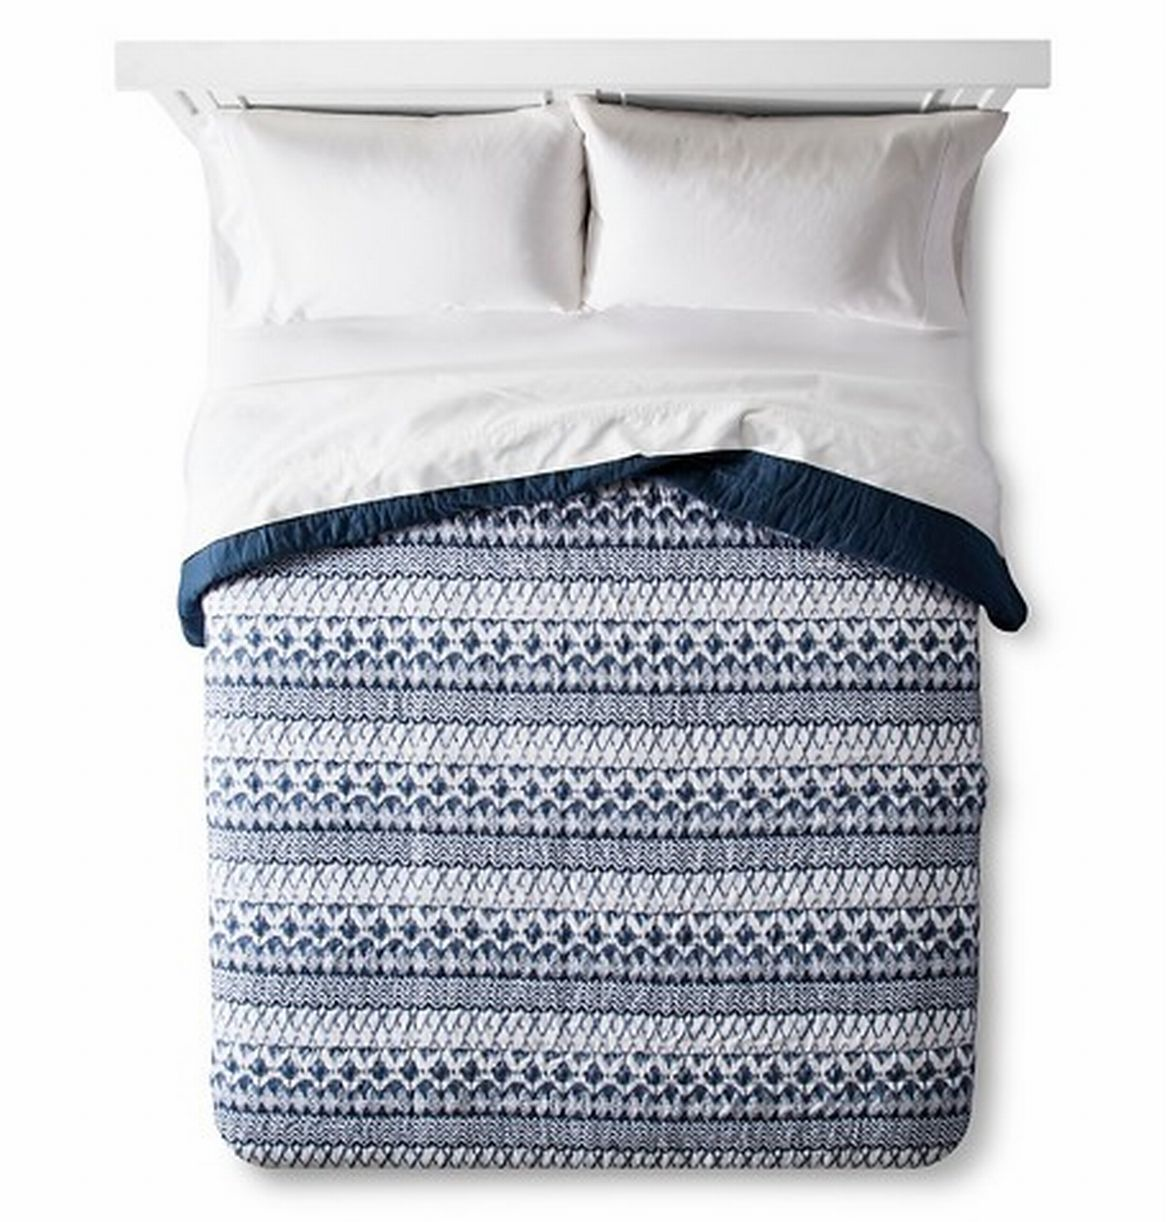 Threshold King Blue Ikat Quilt Cotton Bed Comforter